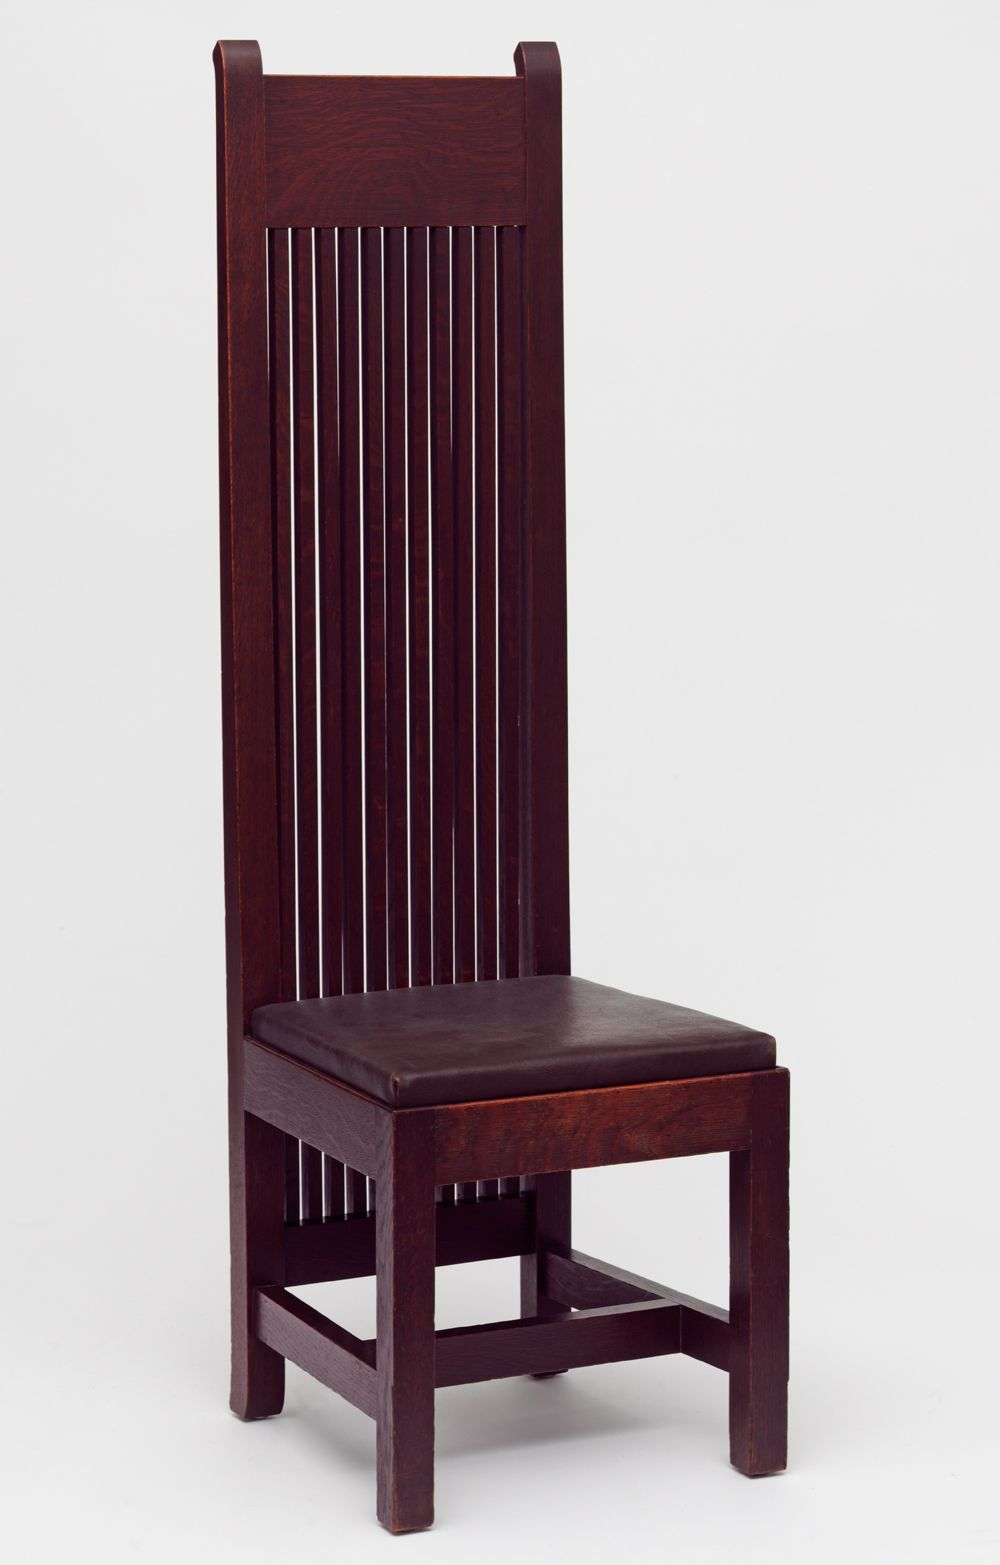 Frank Lloyd Wright Robie House Inspired Oak Dining Chair 1902 Located In The Victoria And Albert Museum Arts Crafts